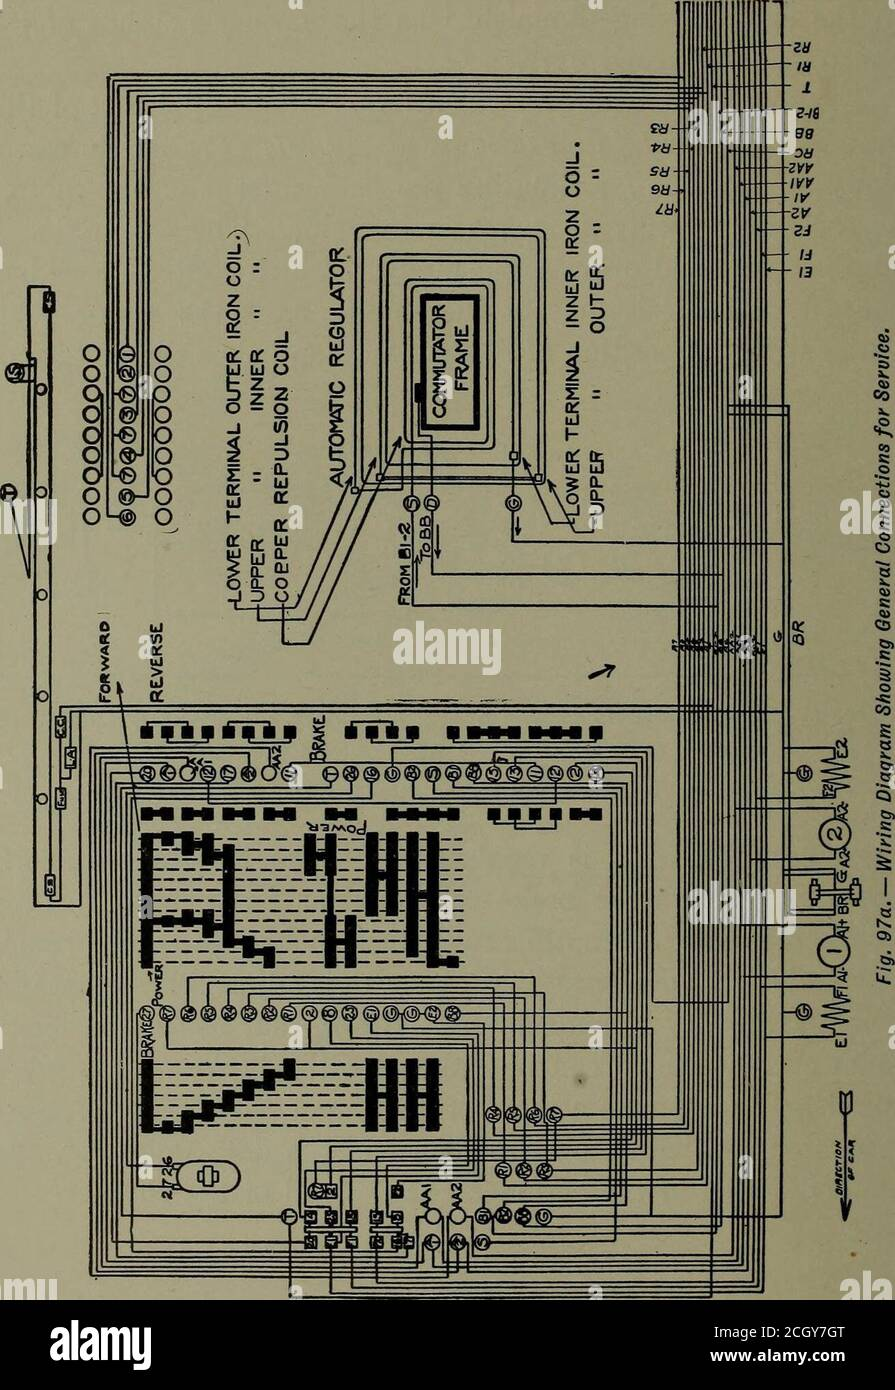 Wiring Diagram High Resolution Stock Photography and Images - Alamy | Adjustable Bed Wiring Diagram |  | Alamy